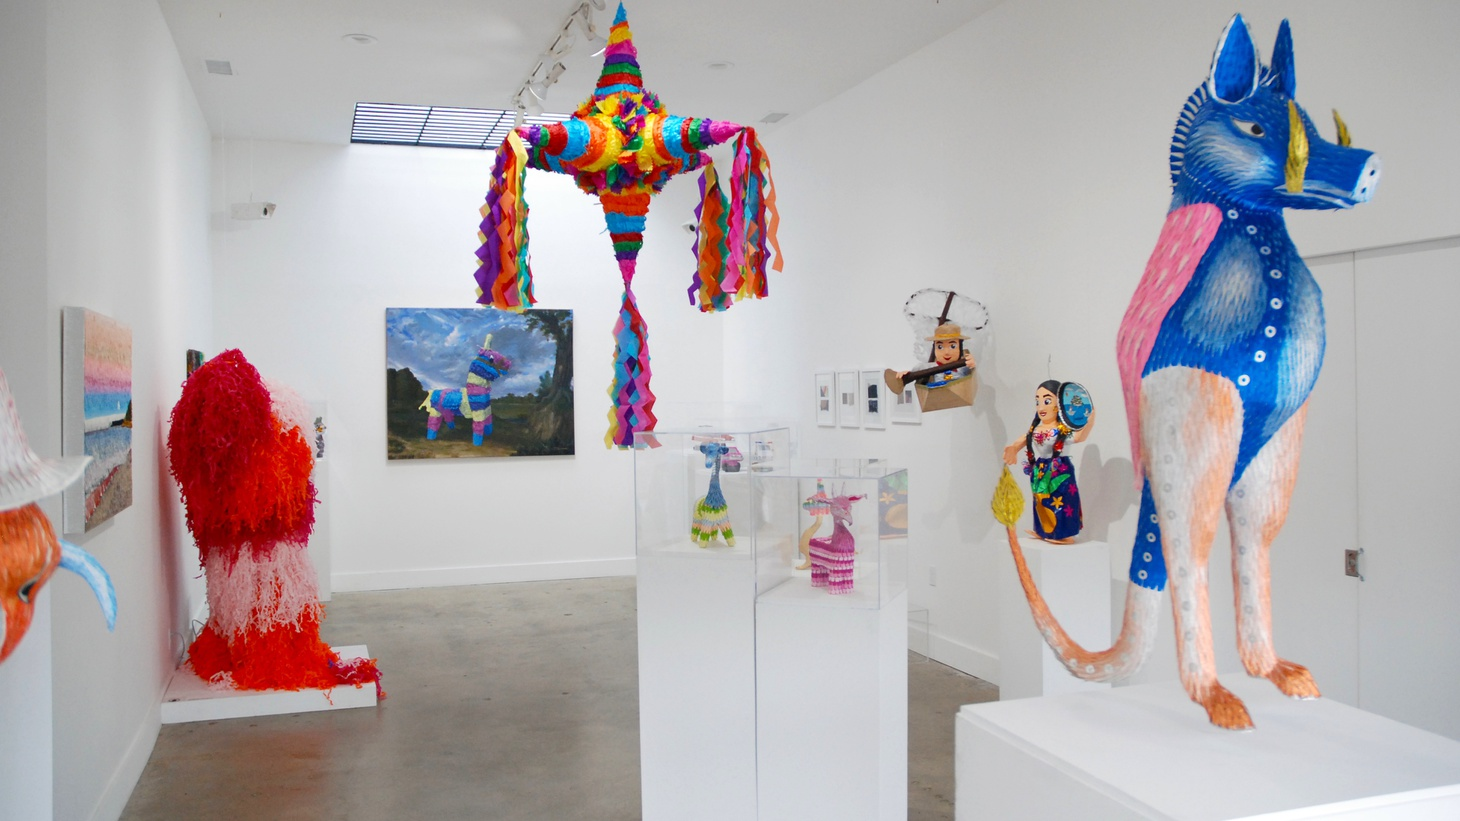 Piñatas are creatively designed and put together by hand — with love and care. But people also discard these beautiful objects. That's according to Emily Zaiden, curator of LA's first-ever piñata exhibit.